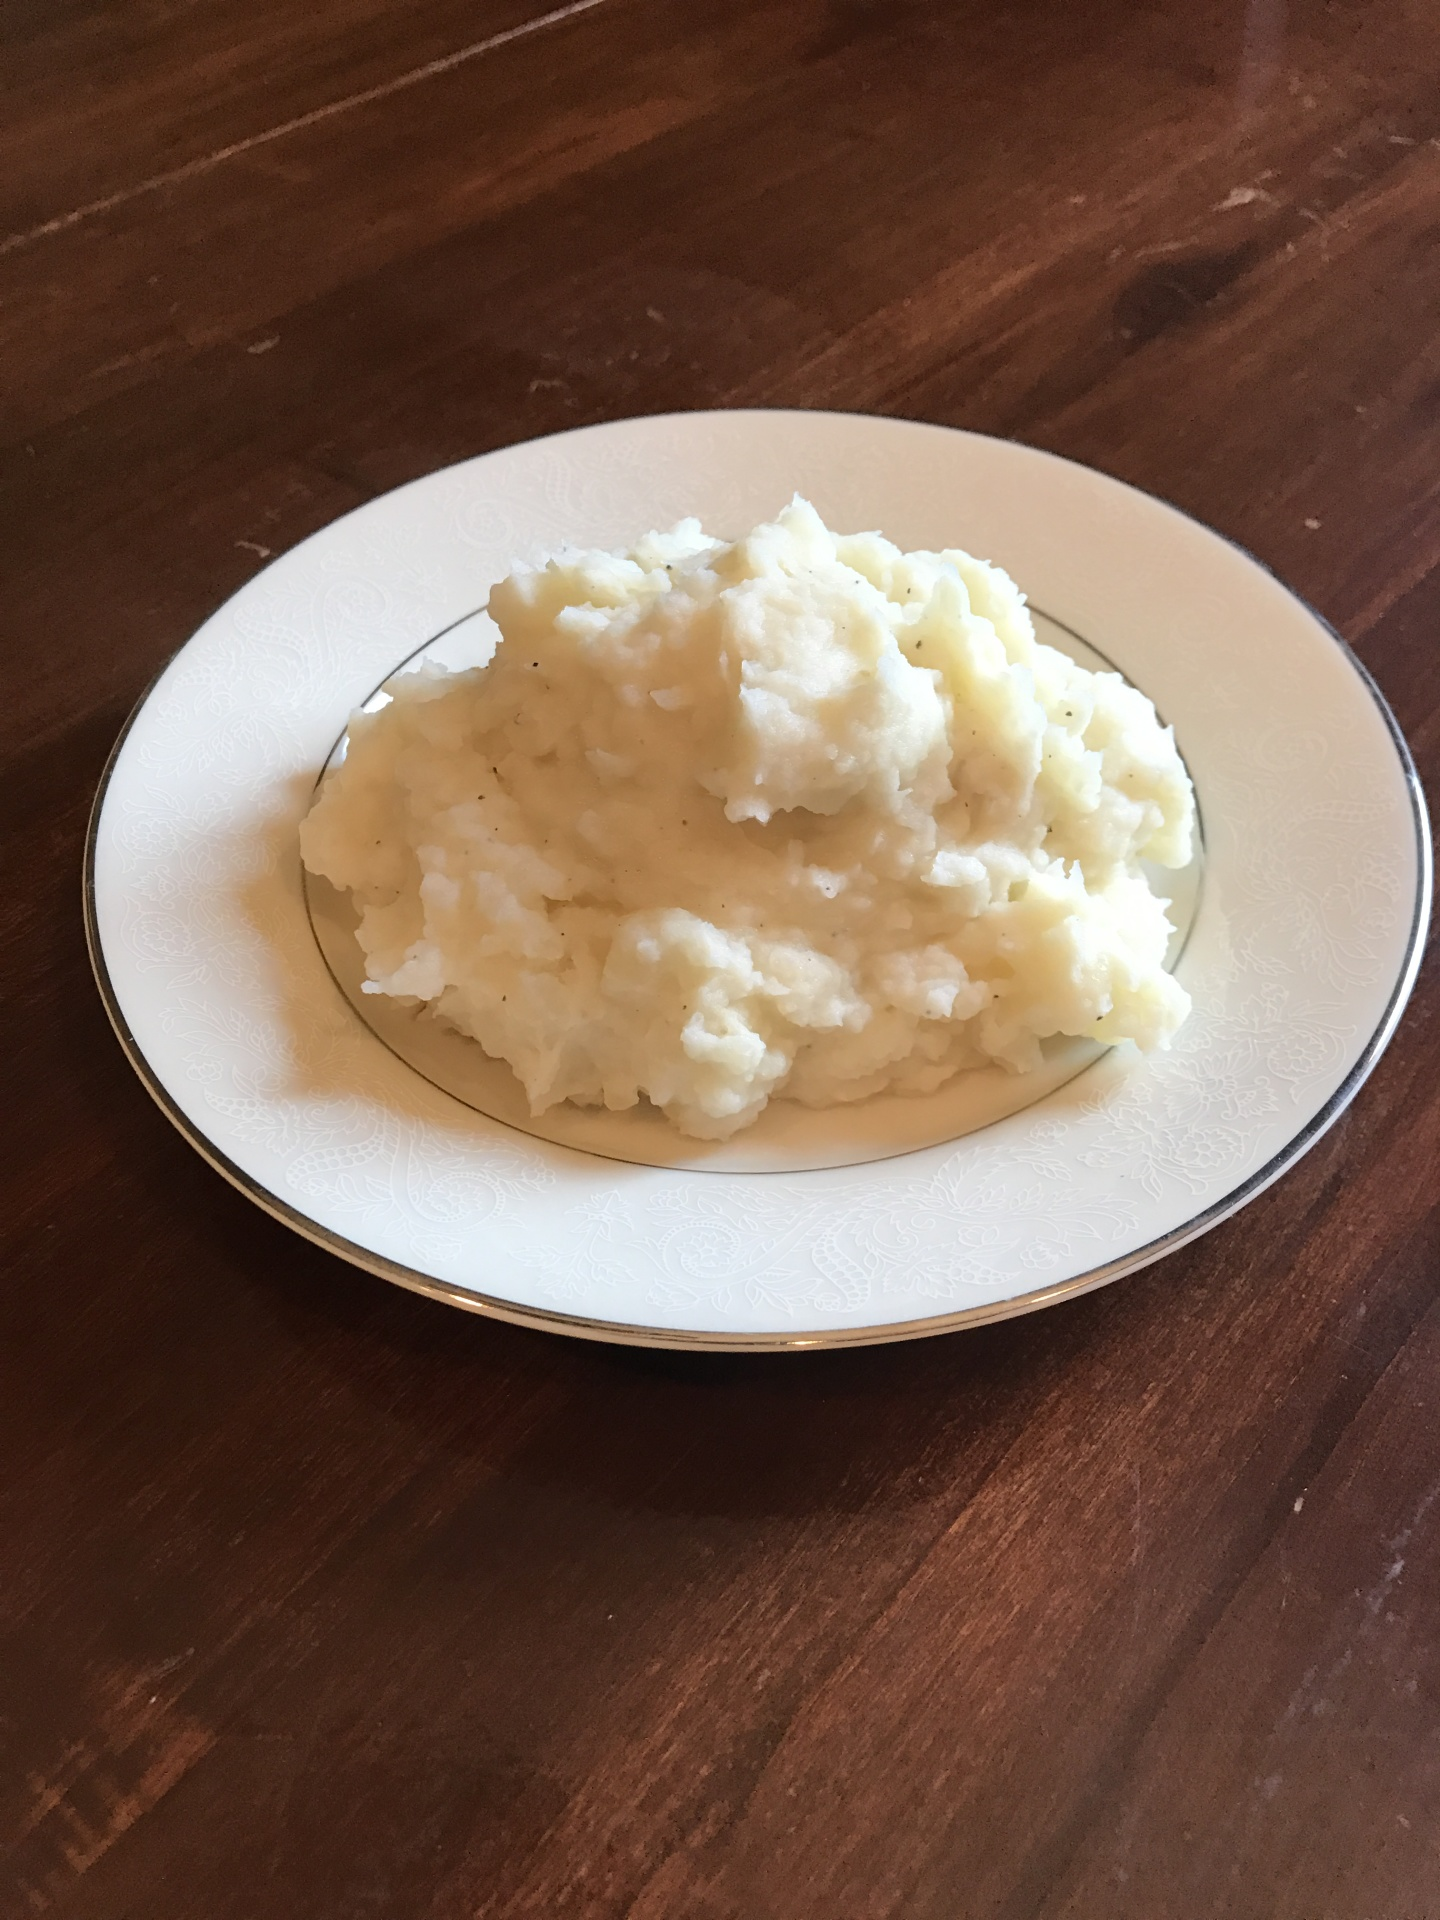 Sour Cream and Garlic Mashed Potatoes